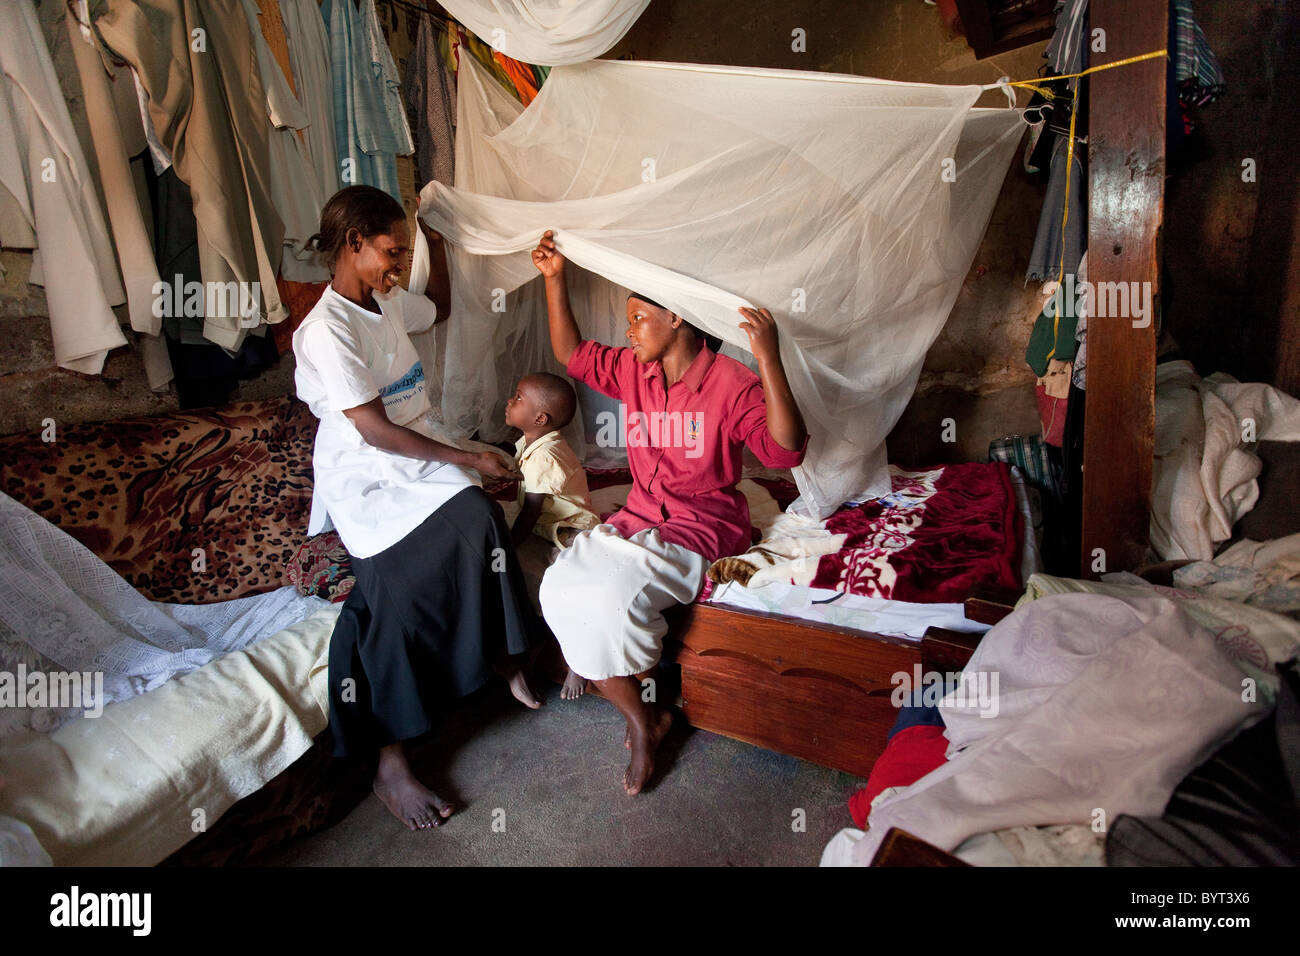 A home health care worker installs a mosquito net in the home of a family in Kampala, Uganda, East Africa. - Stock Image